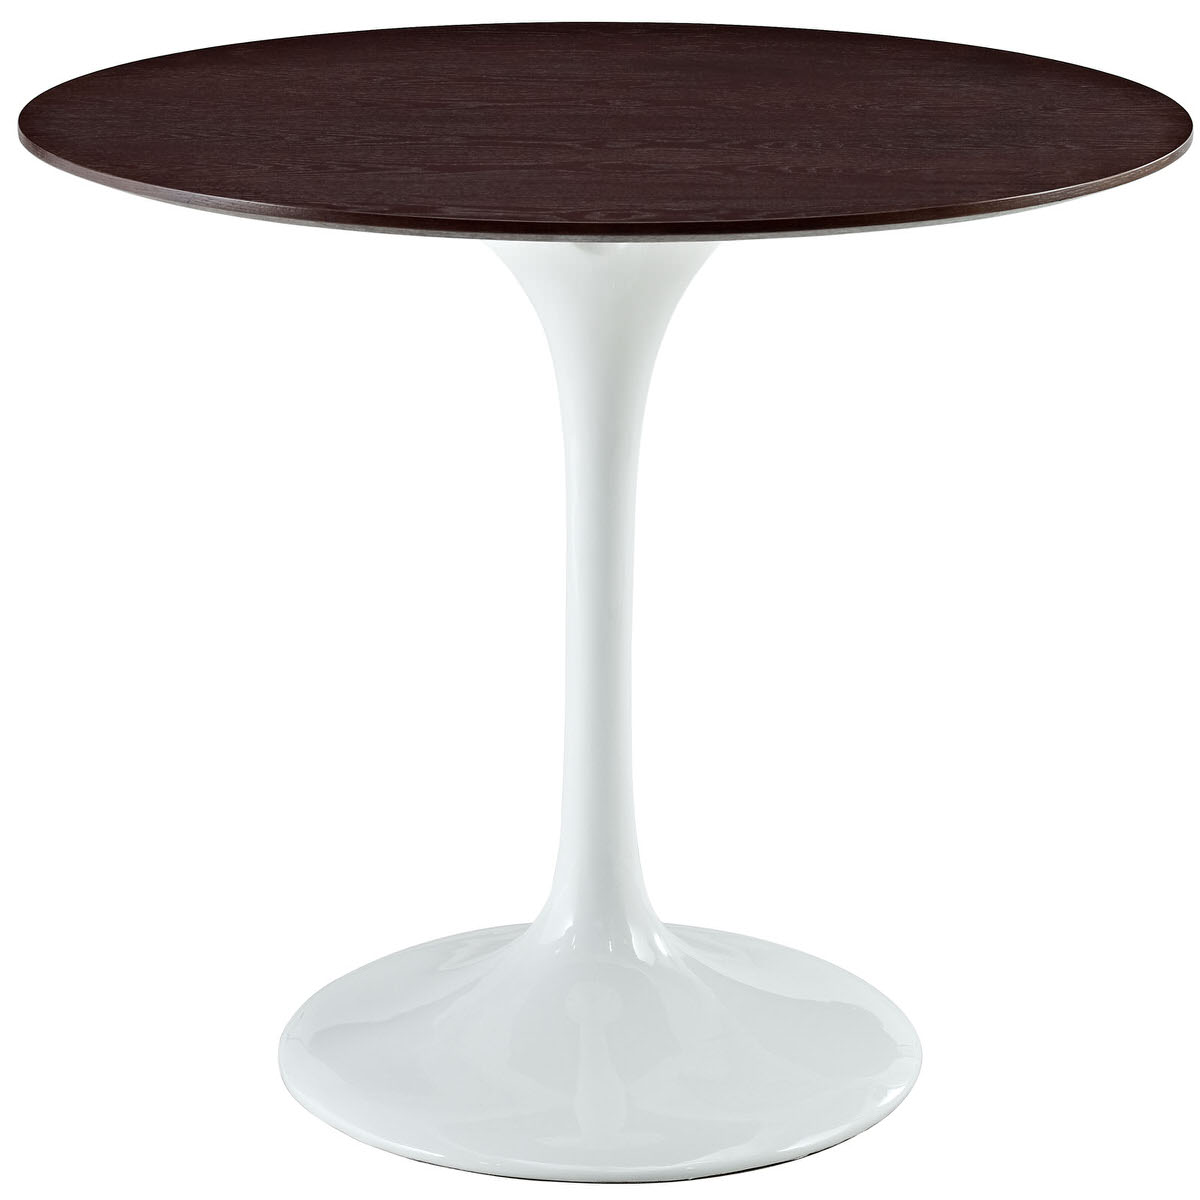 Lippa Inch Round Walnut Dining Table White By Modern Living - 36 inch oval dining table